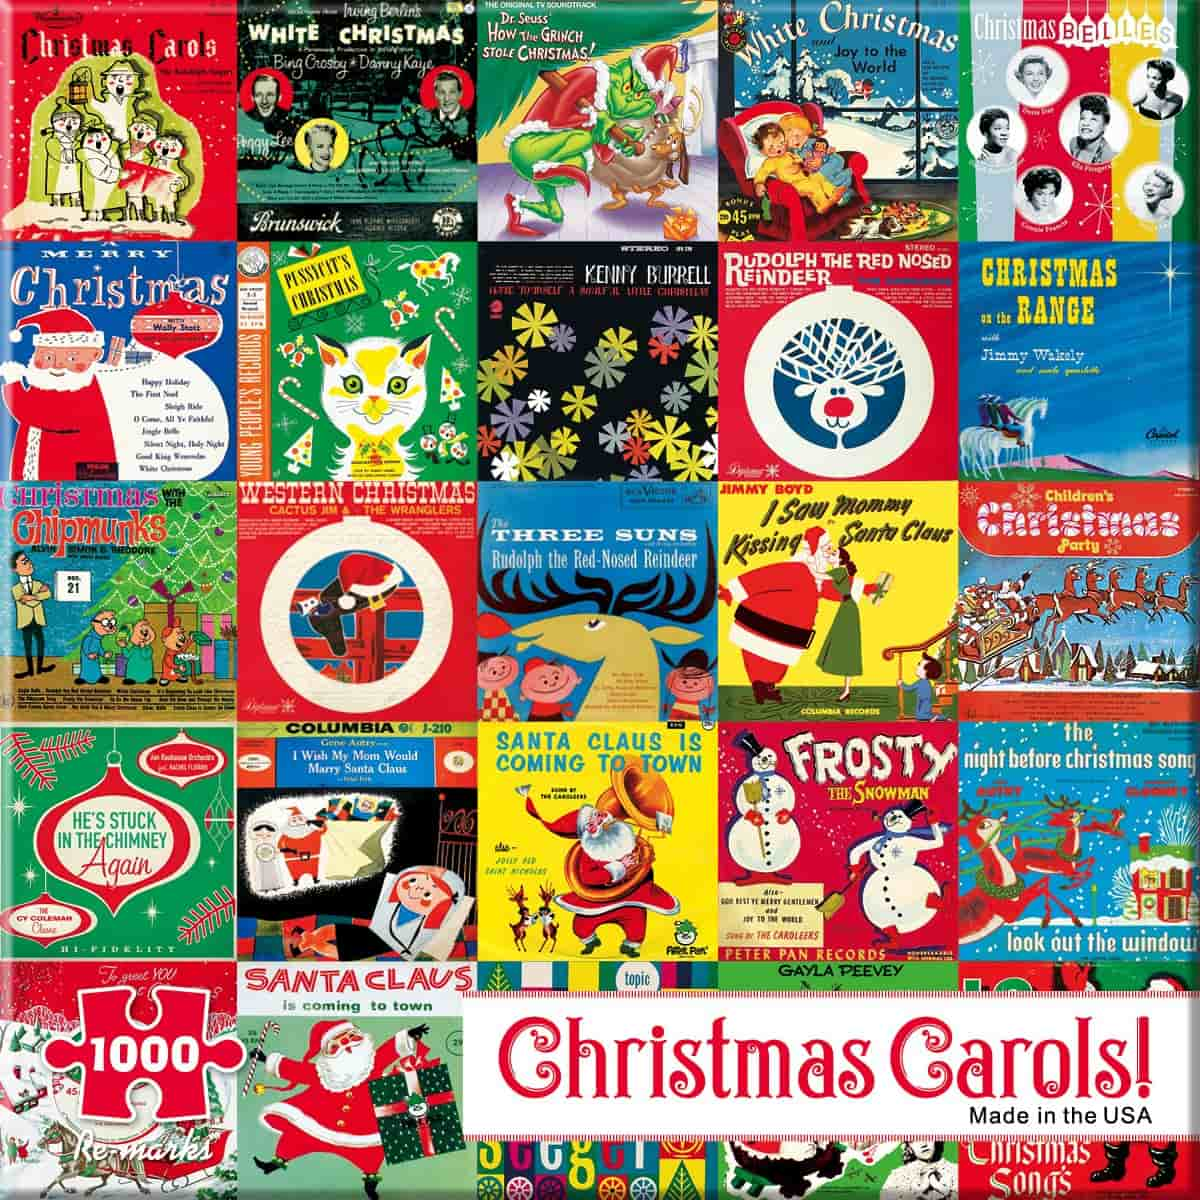 Berlin Puzzle Christmas Record Covers Jigsaw Puzzle Falalalala